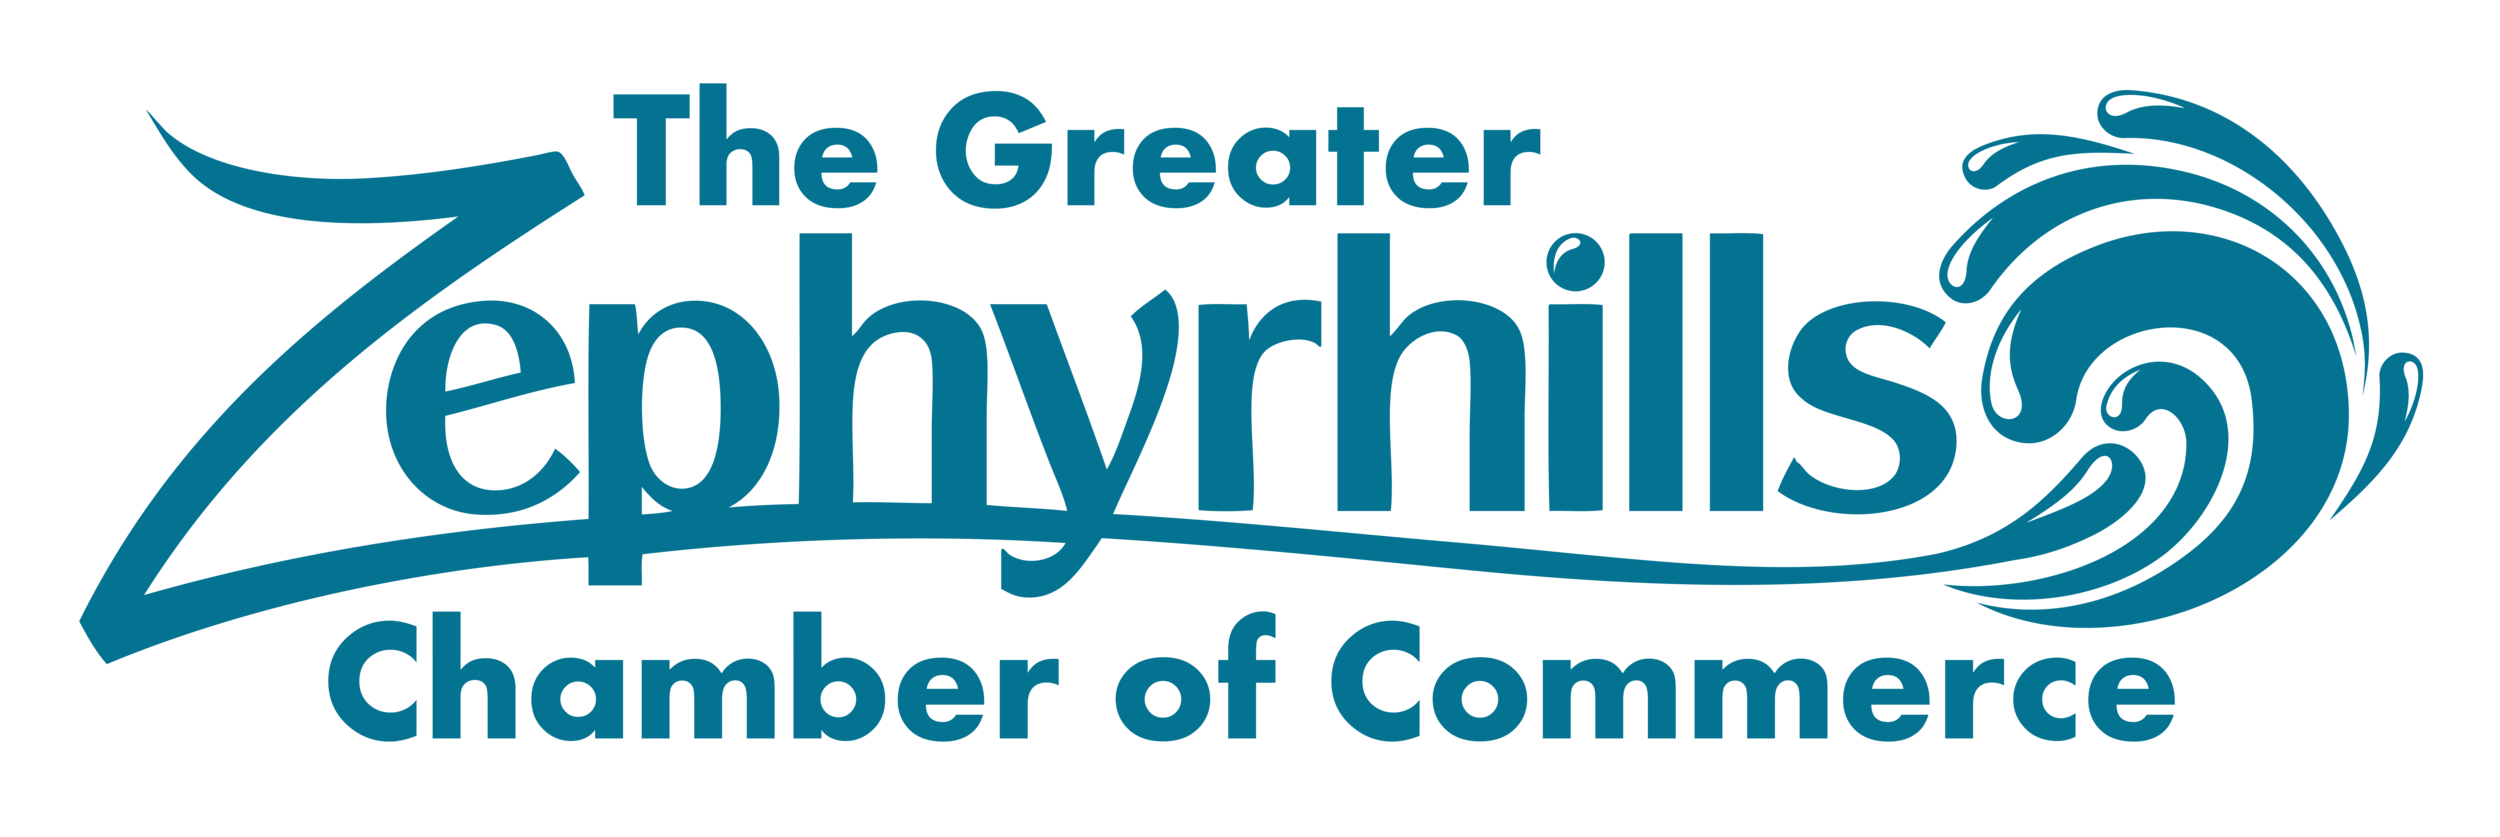 The Greater Zephyrhills Chamber of Commerce  Address: 38550 5th Avenue Zephyrhills  Phone: 813-782-1913   Website    Facebook